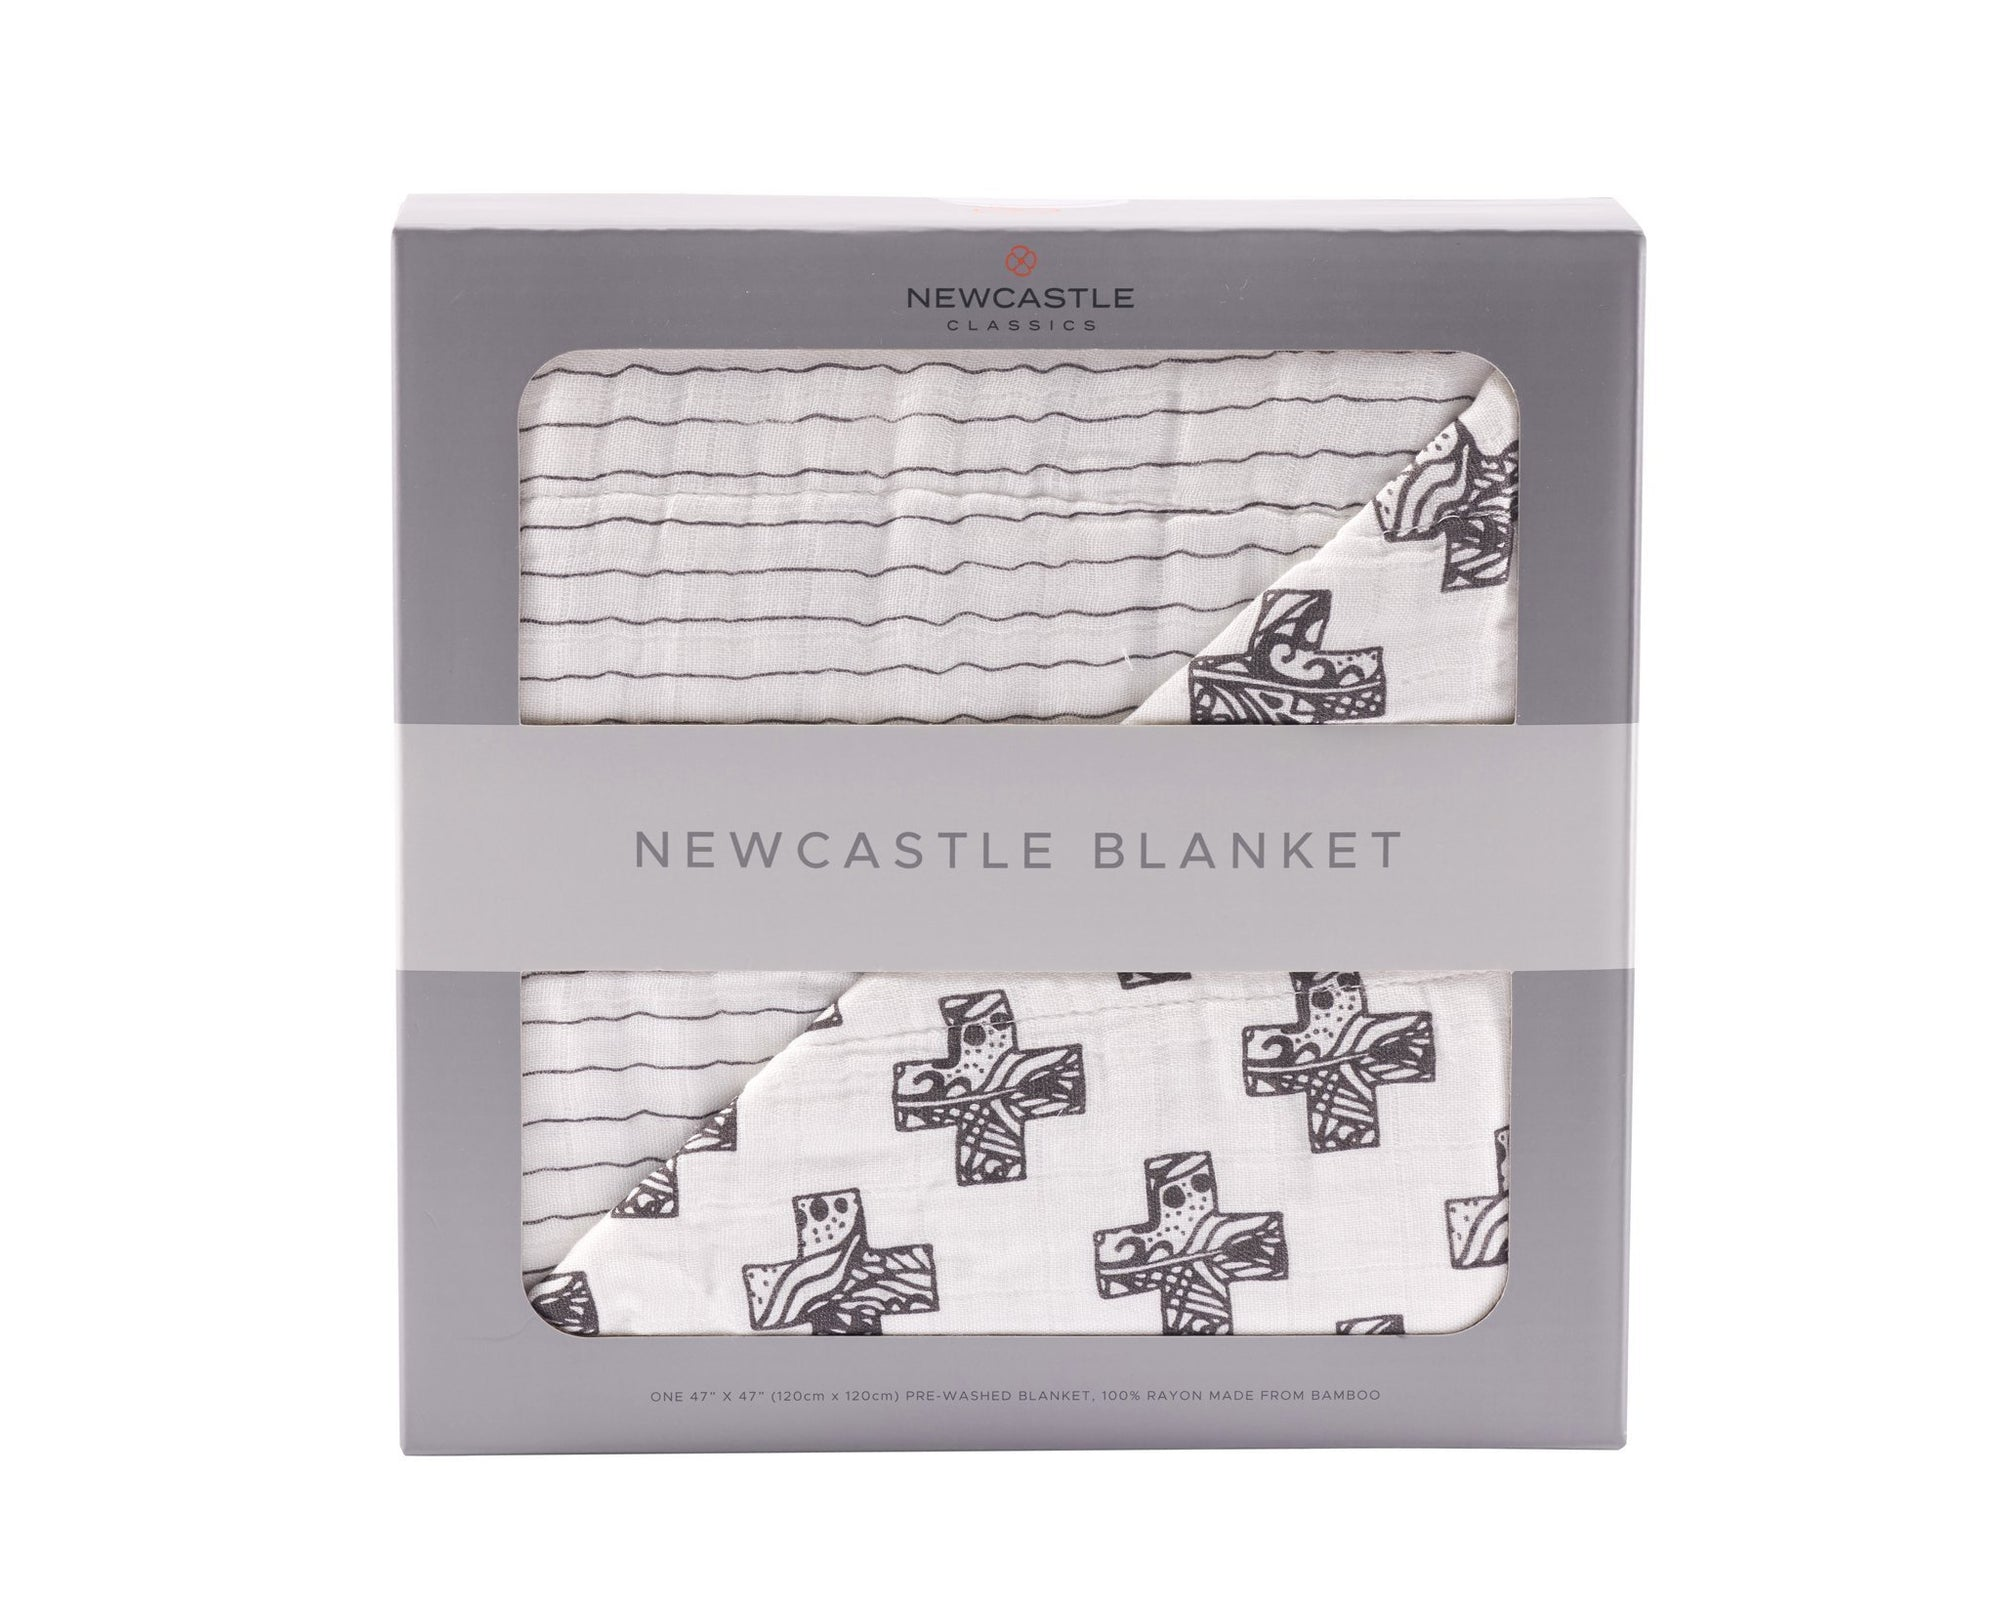 Nordiac Cross and Pencil Stripe Newcastle Blanket - Baby World Inc